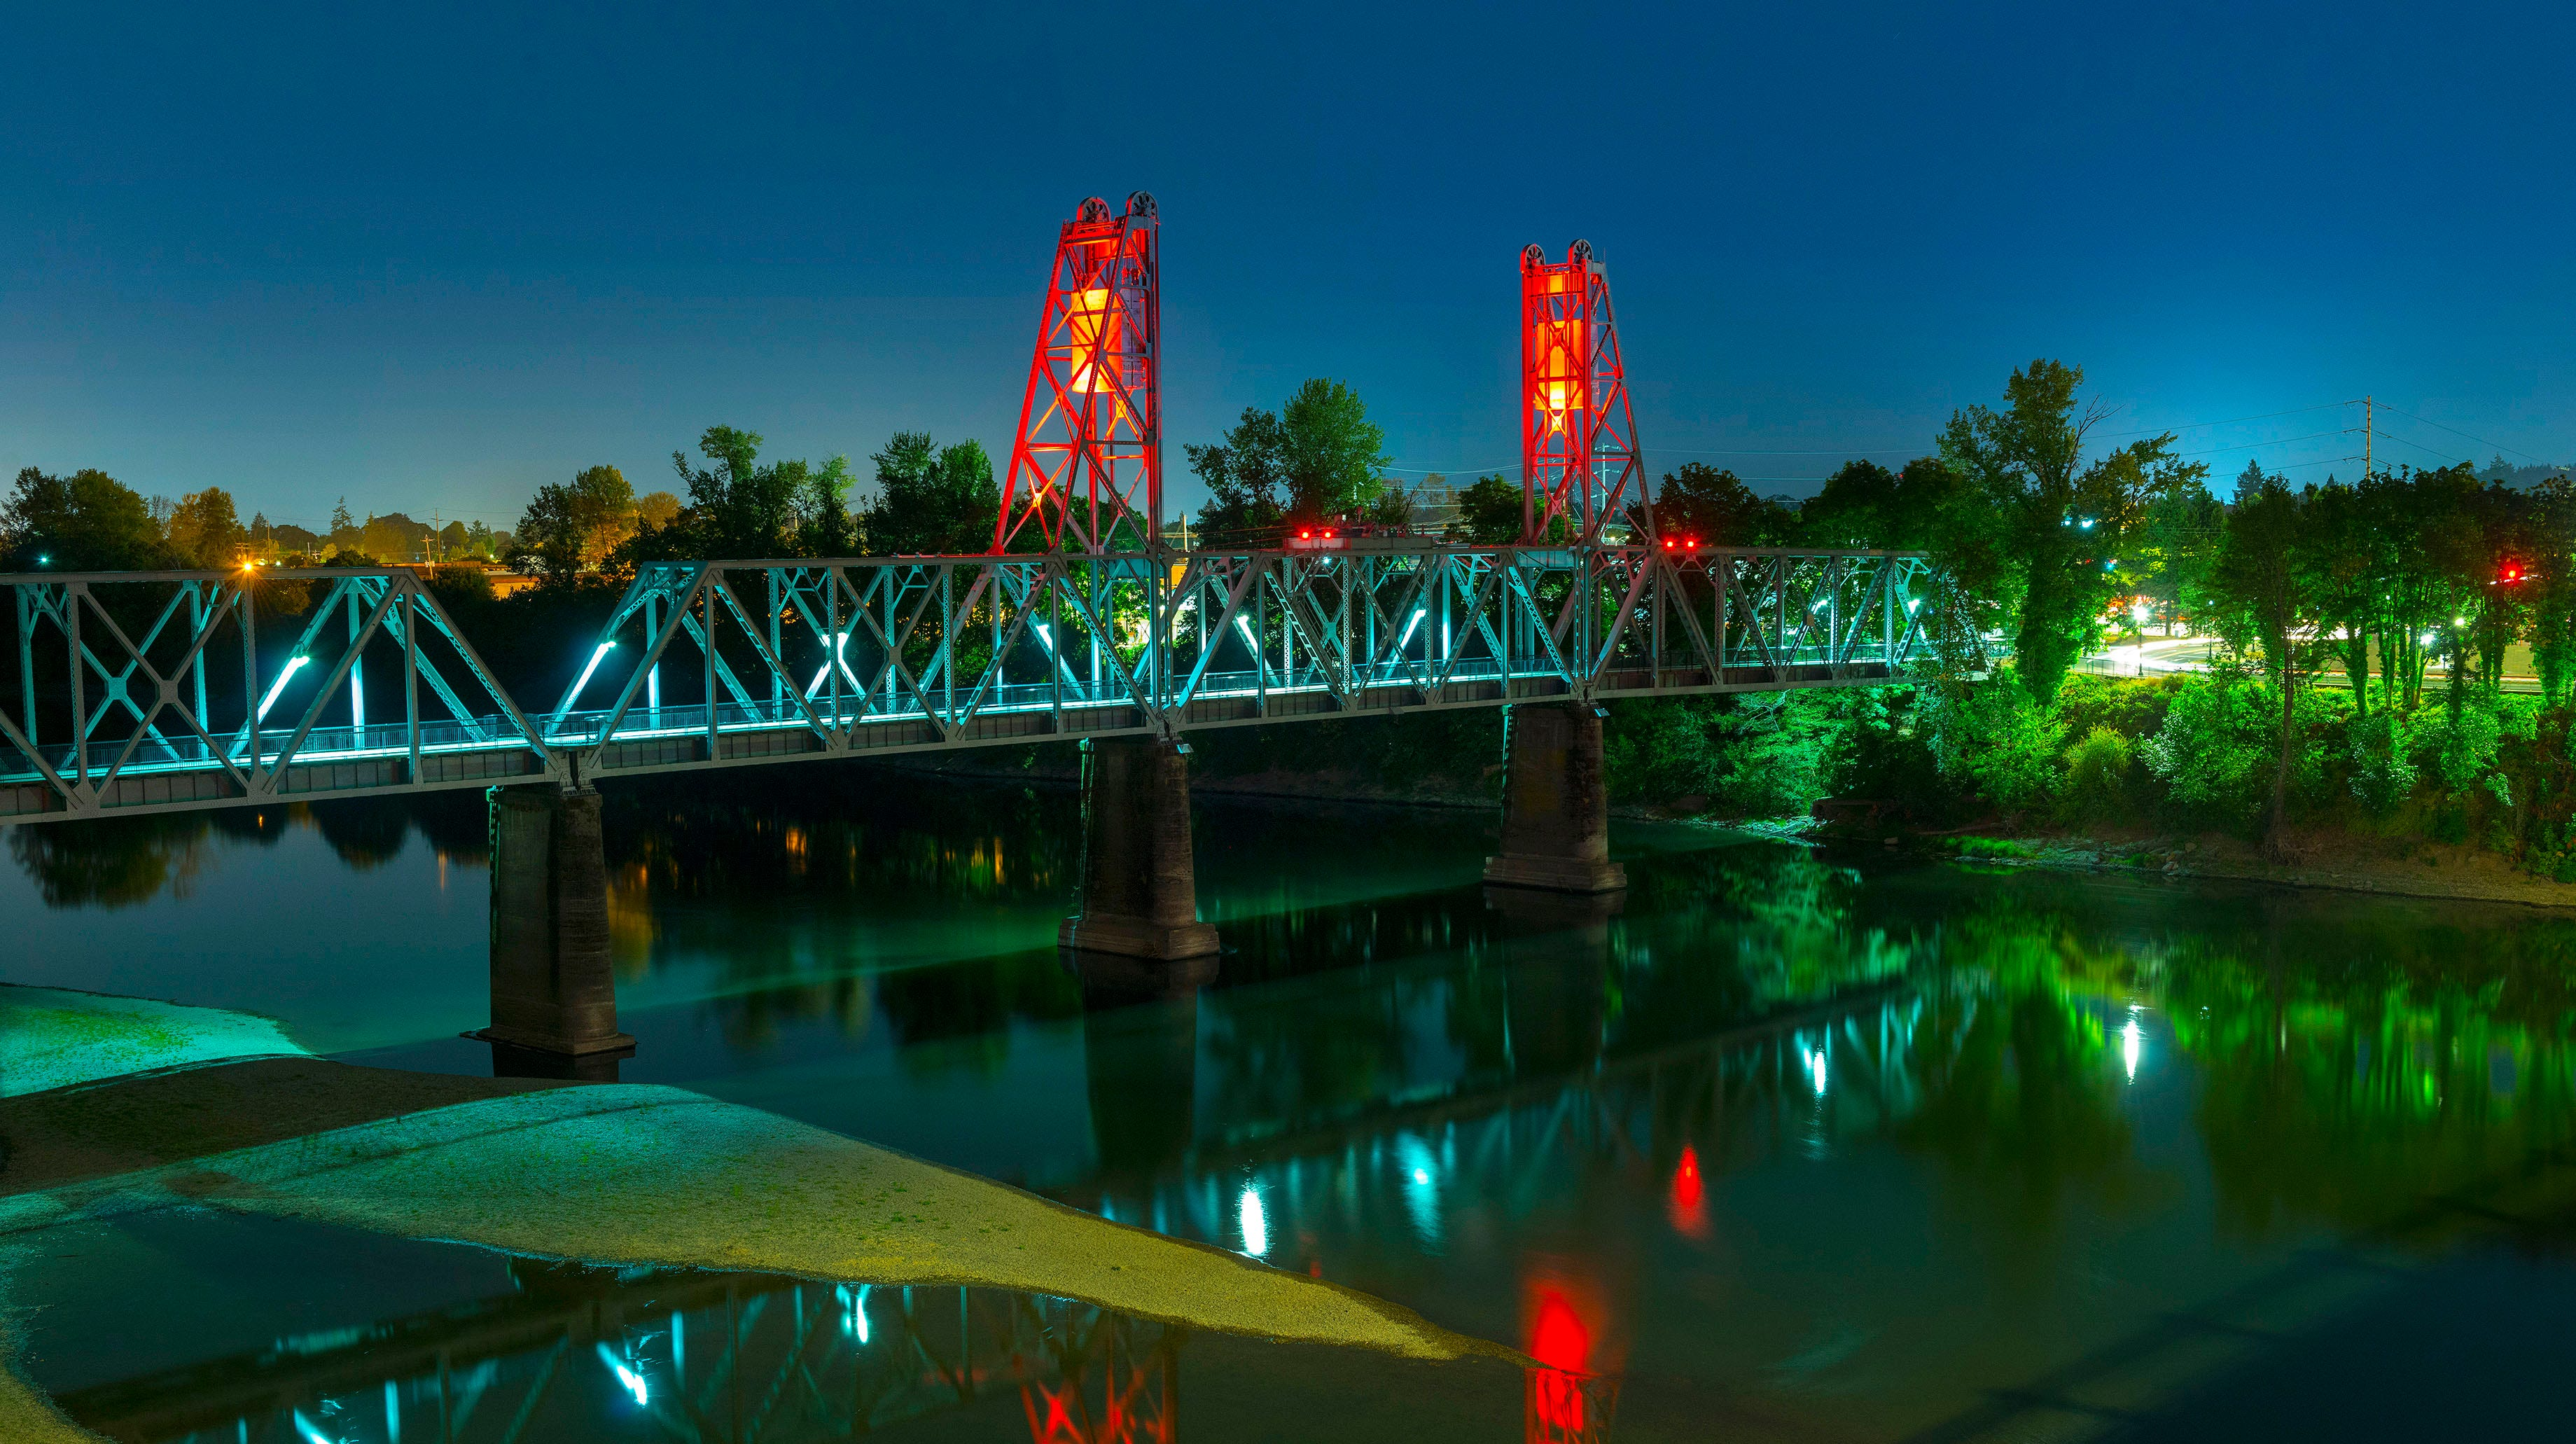 Union Street Railroad Bridge turns orange, reminds travelers to watch for road workers